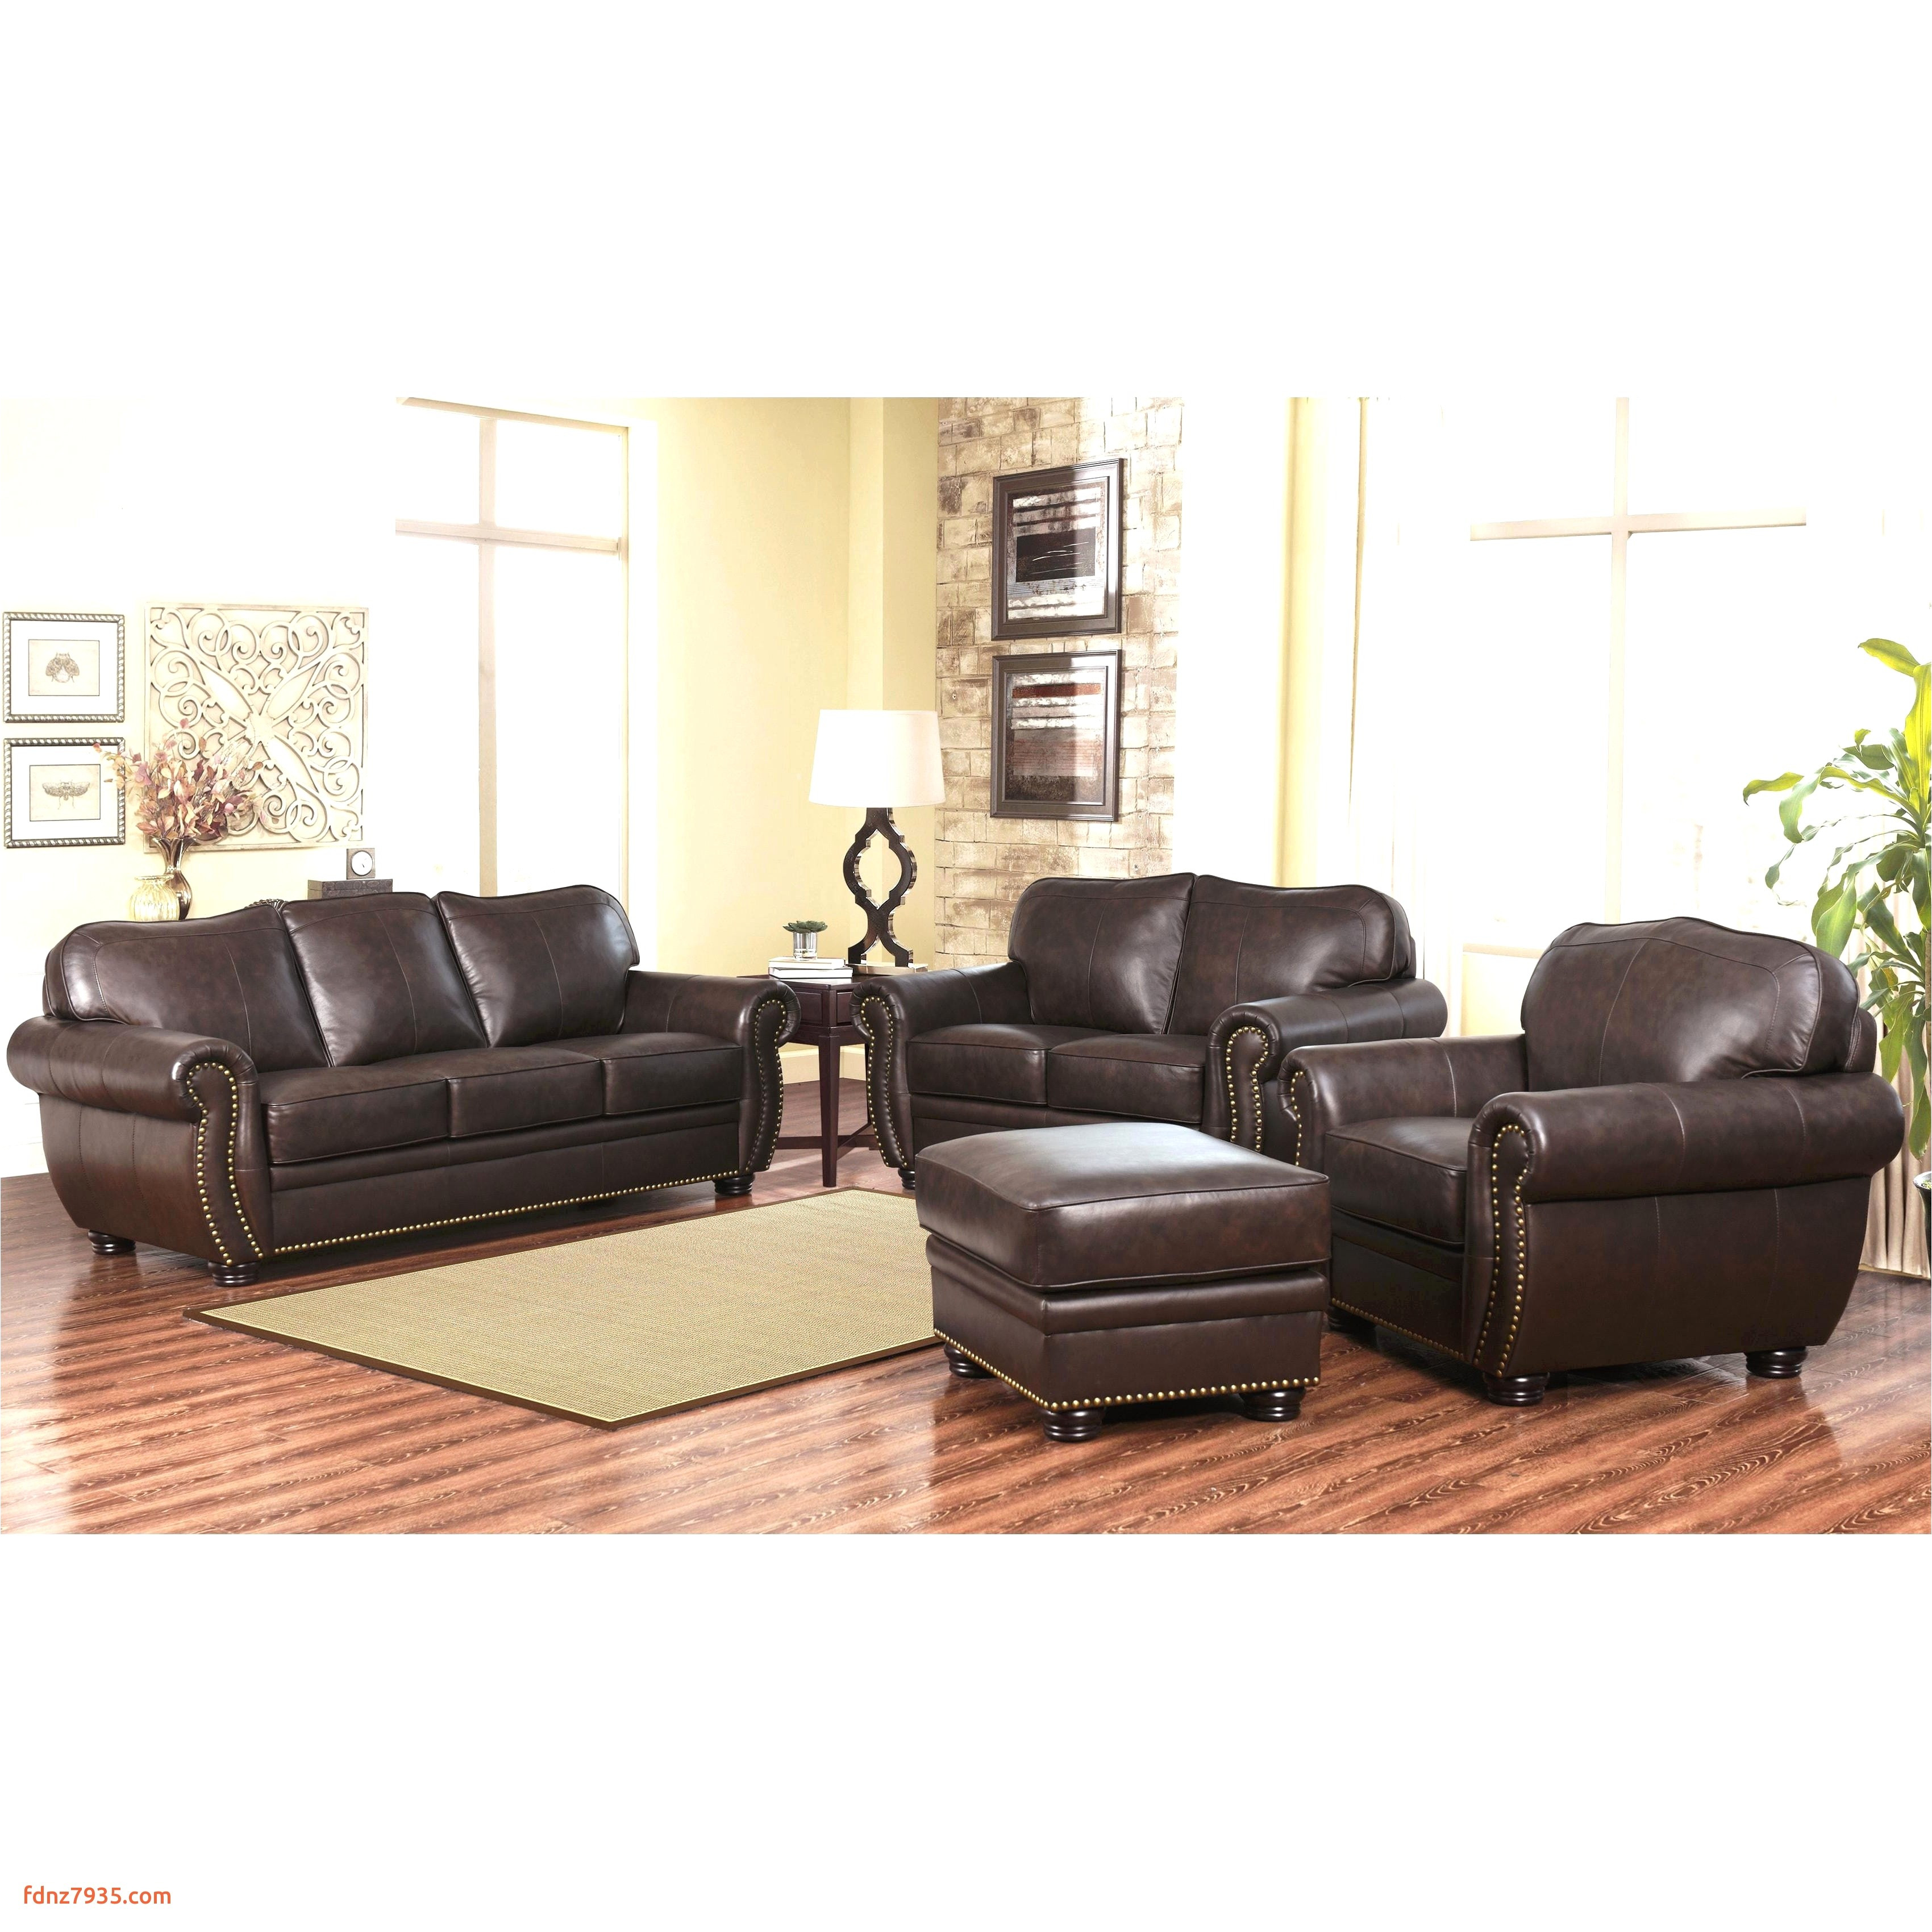 full size of recliner 12 ideas of sensasional leather sofa and recliner set reclining chairs